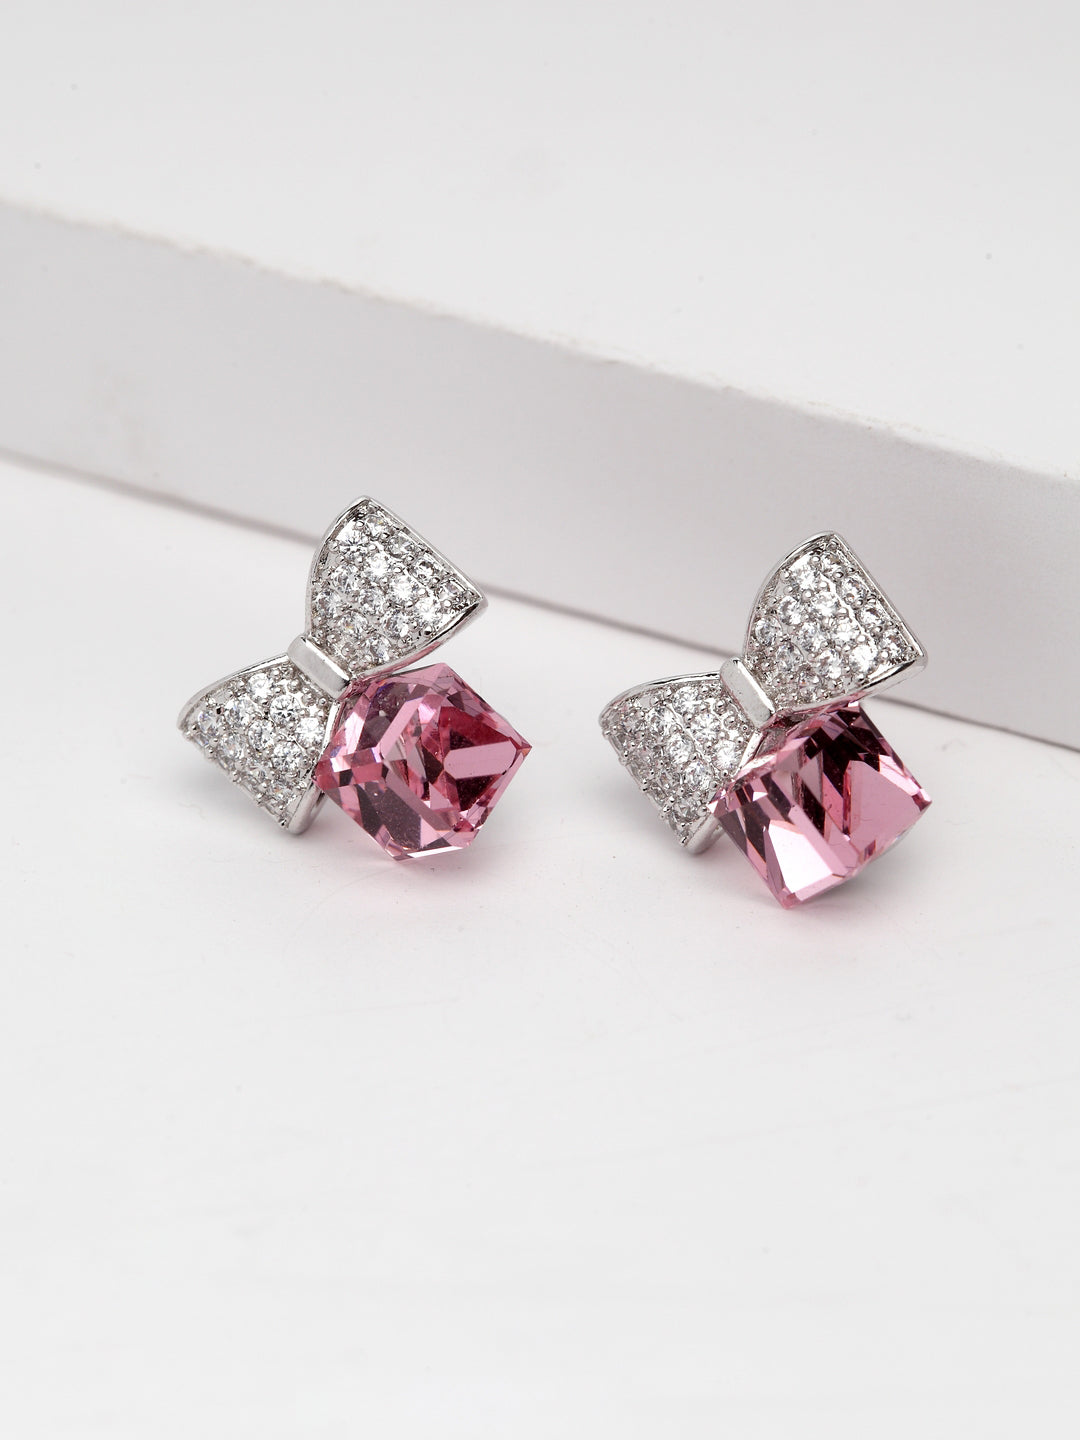 Daily Wear/Office Wear Stylish Bow Drop Earrings For Women & Girls